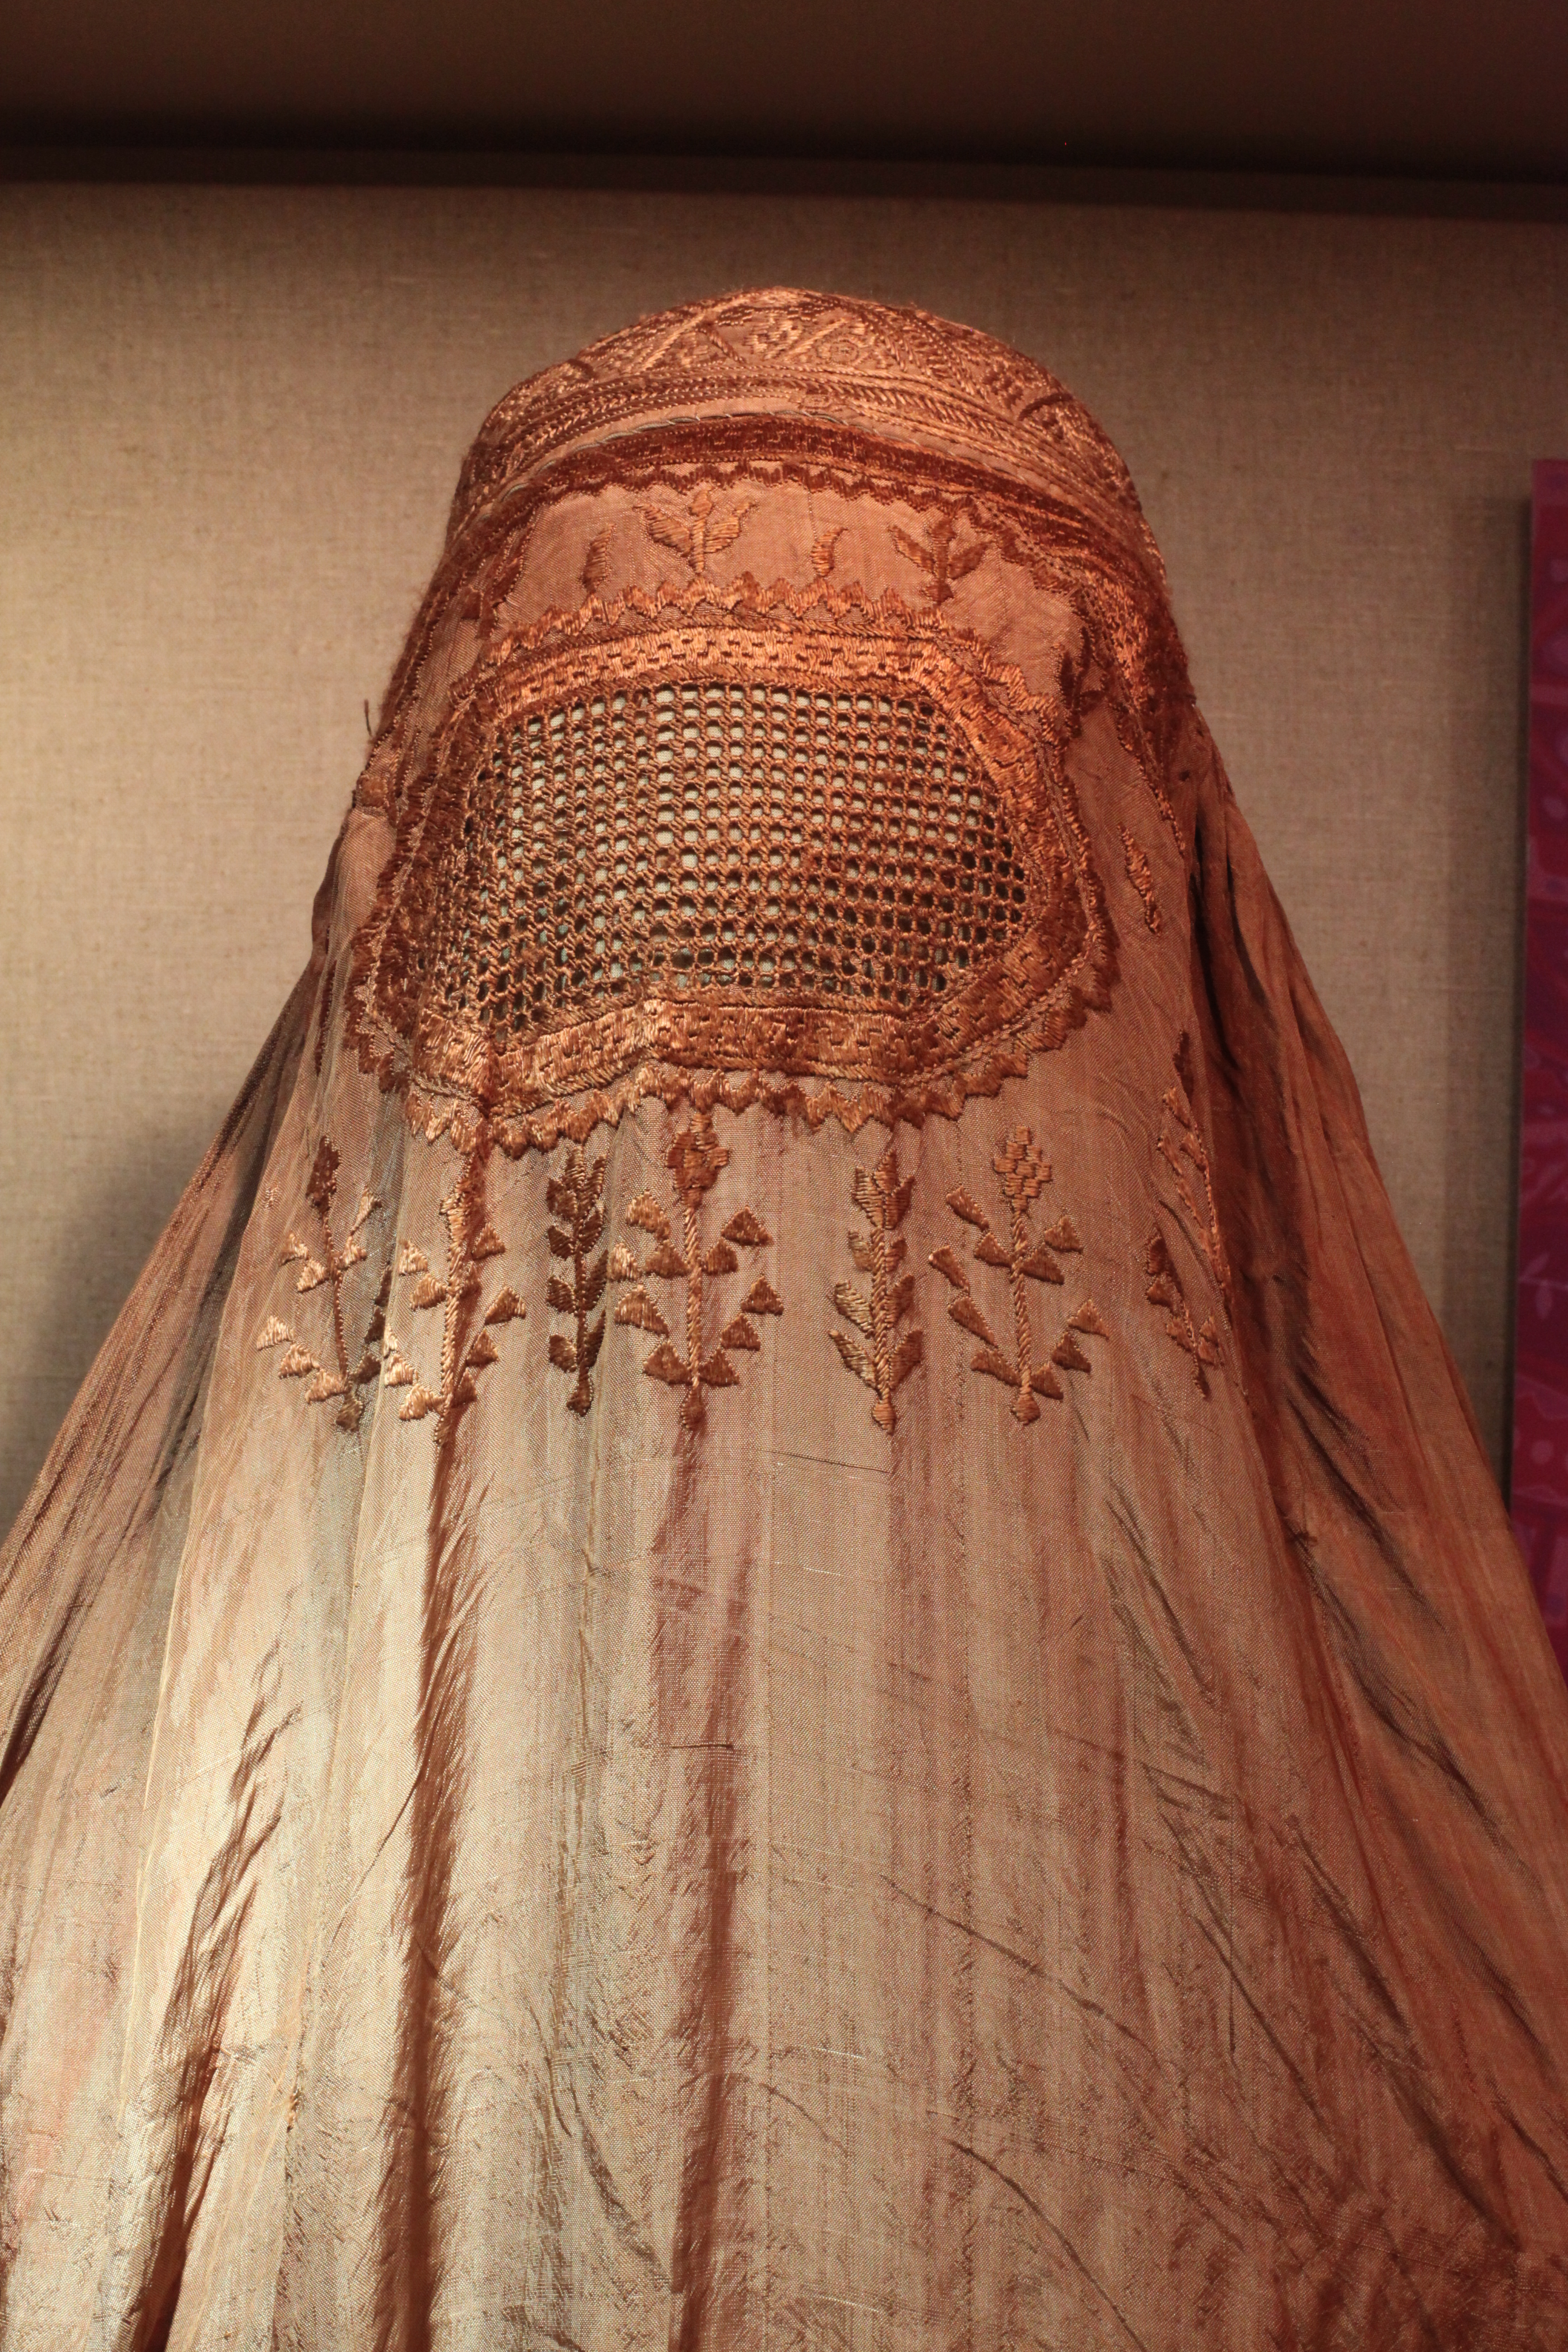 The full burqa.